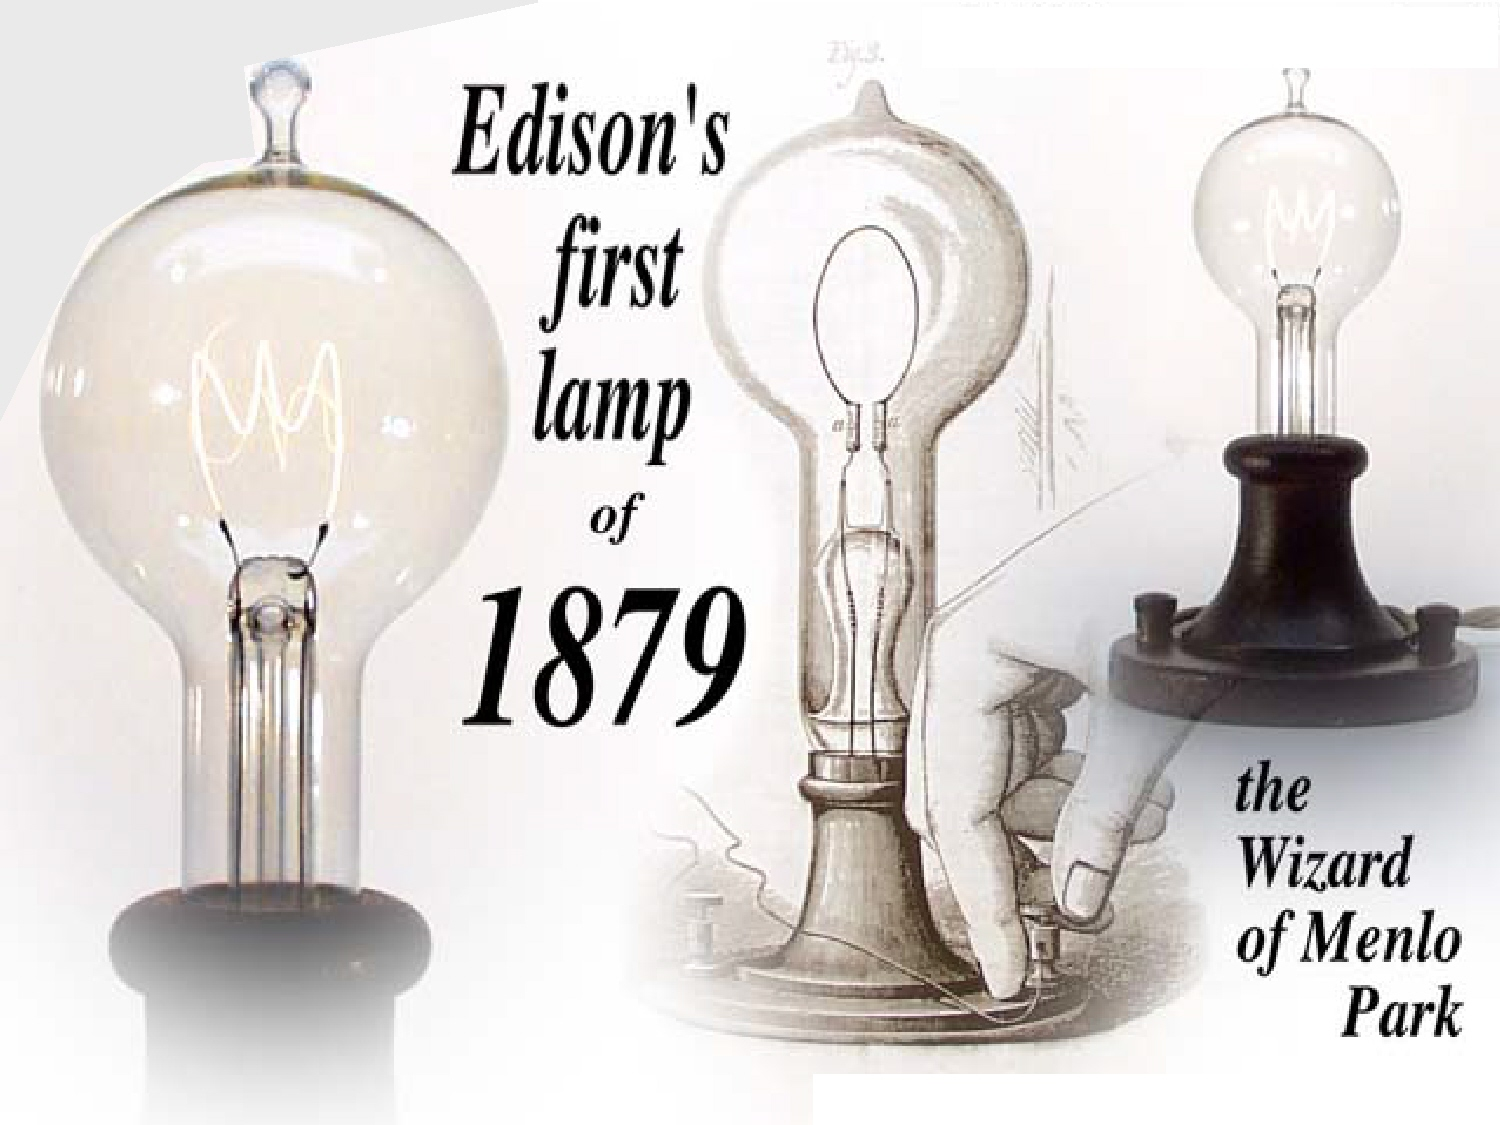 essay on the invention of the light bulb Summary: how life would be different without thomas edison's most famous invention: the light bulb to reach a goal you need 1% inspiration and 99% perspiration believed thomas edison thomas edison was a pioneer of history he had changed the world with his ingenious invention the light bulb.